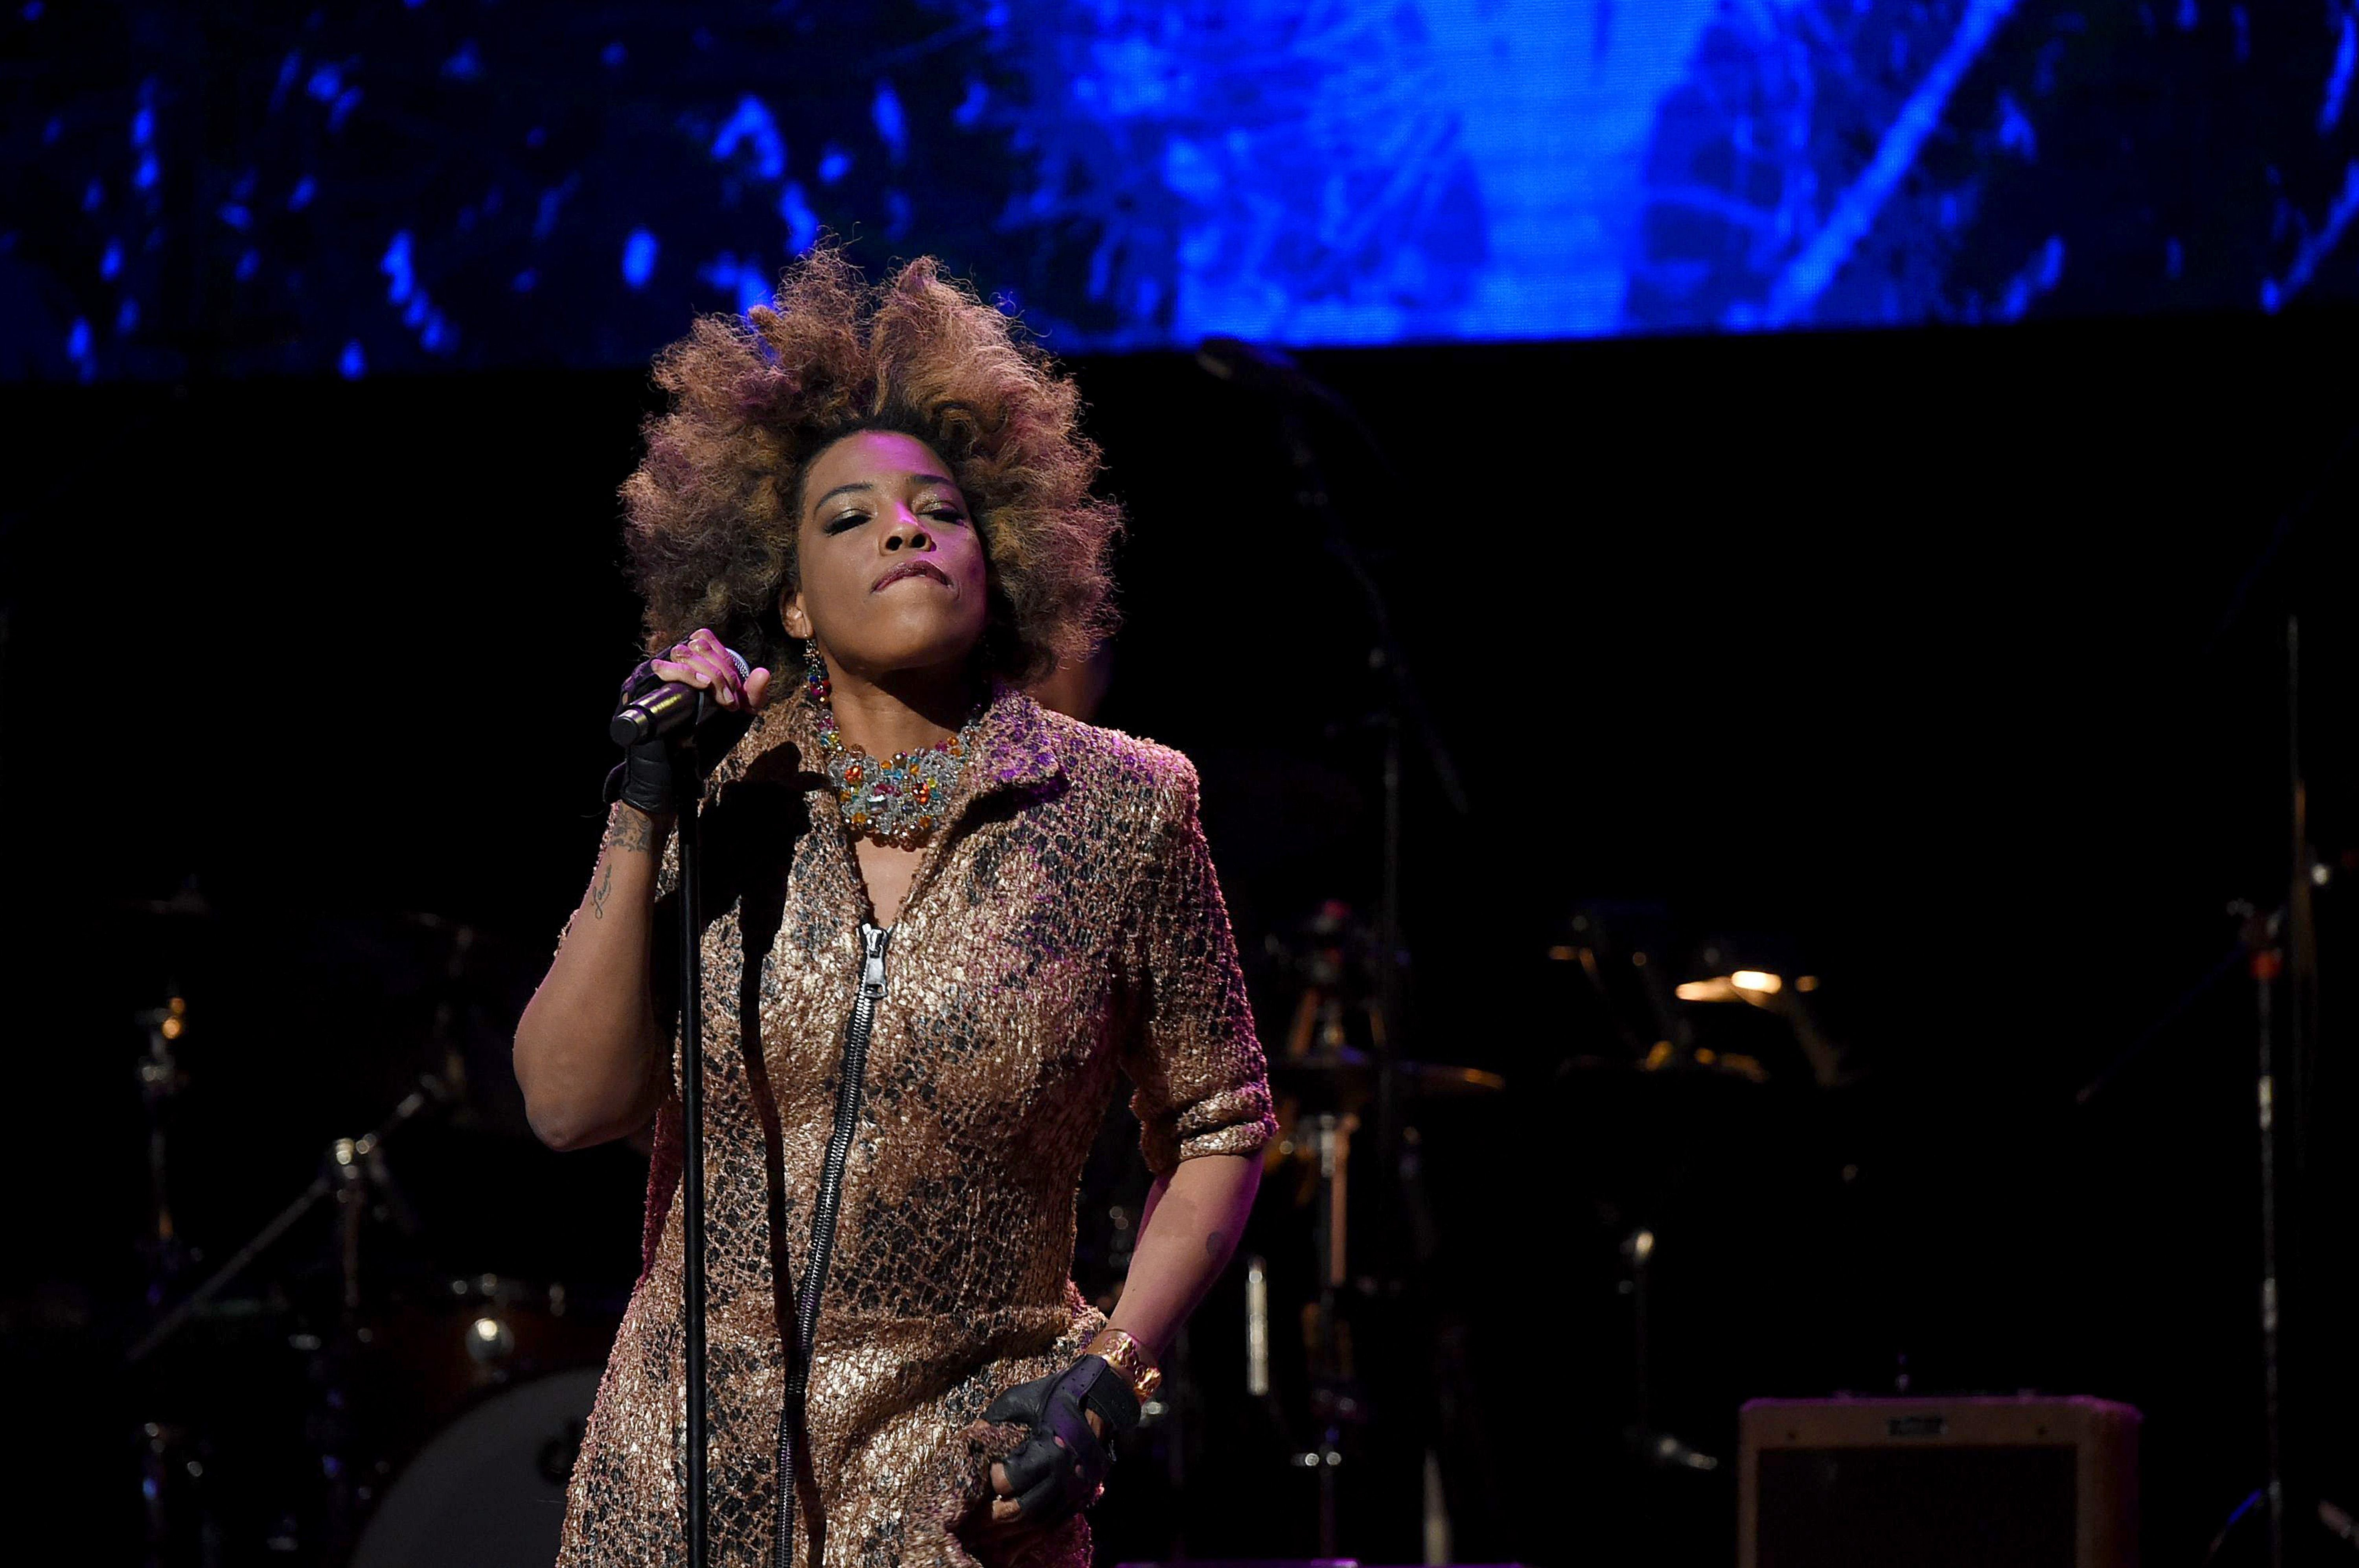 Macy Gray at the Fourth Annual LOVE ROCKS NYC benefit concert for God's Love We Deliver at Beacon Theatre on March 12, 2020 in New York City. | Source: Shutterstock